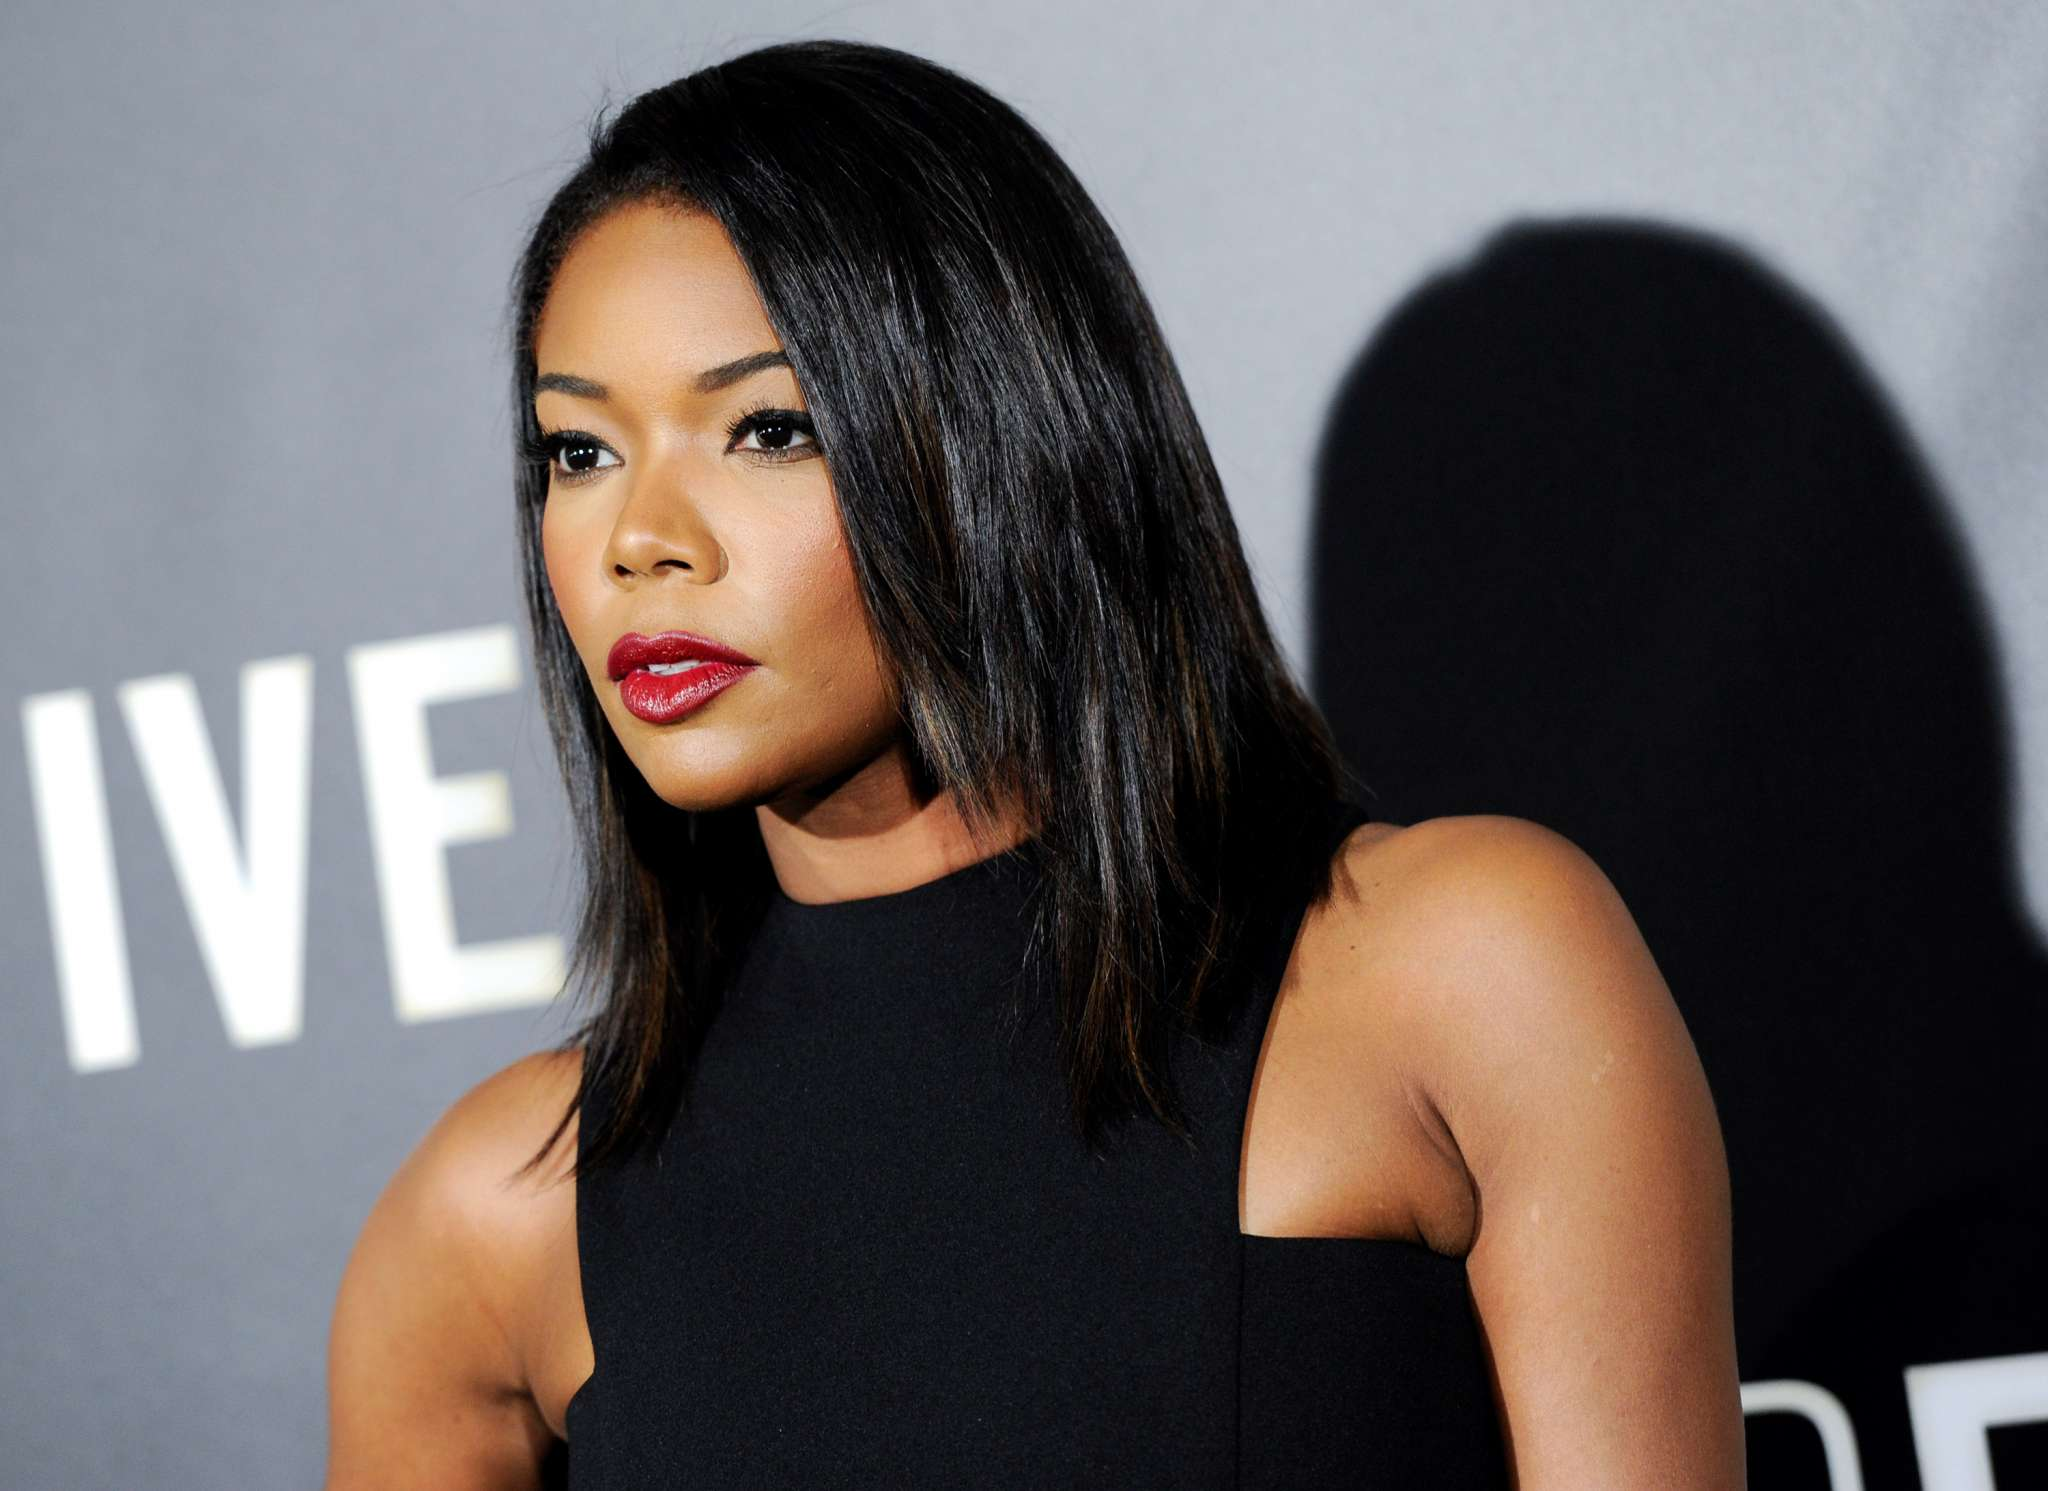 Gabrielle Union Gushes Over Her Daughter, Kaavia James – Check Out The Video She Posted